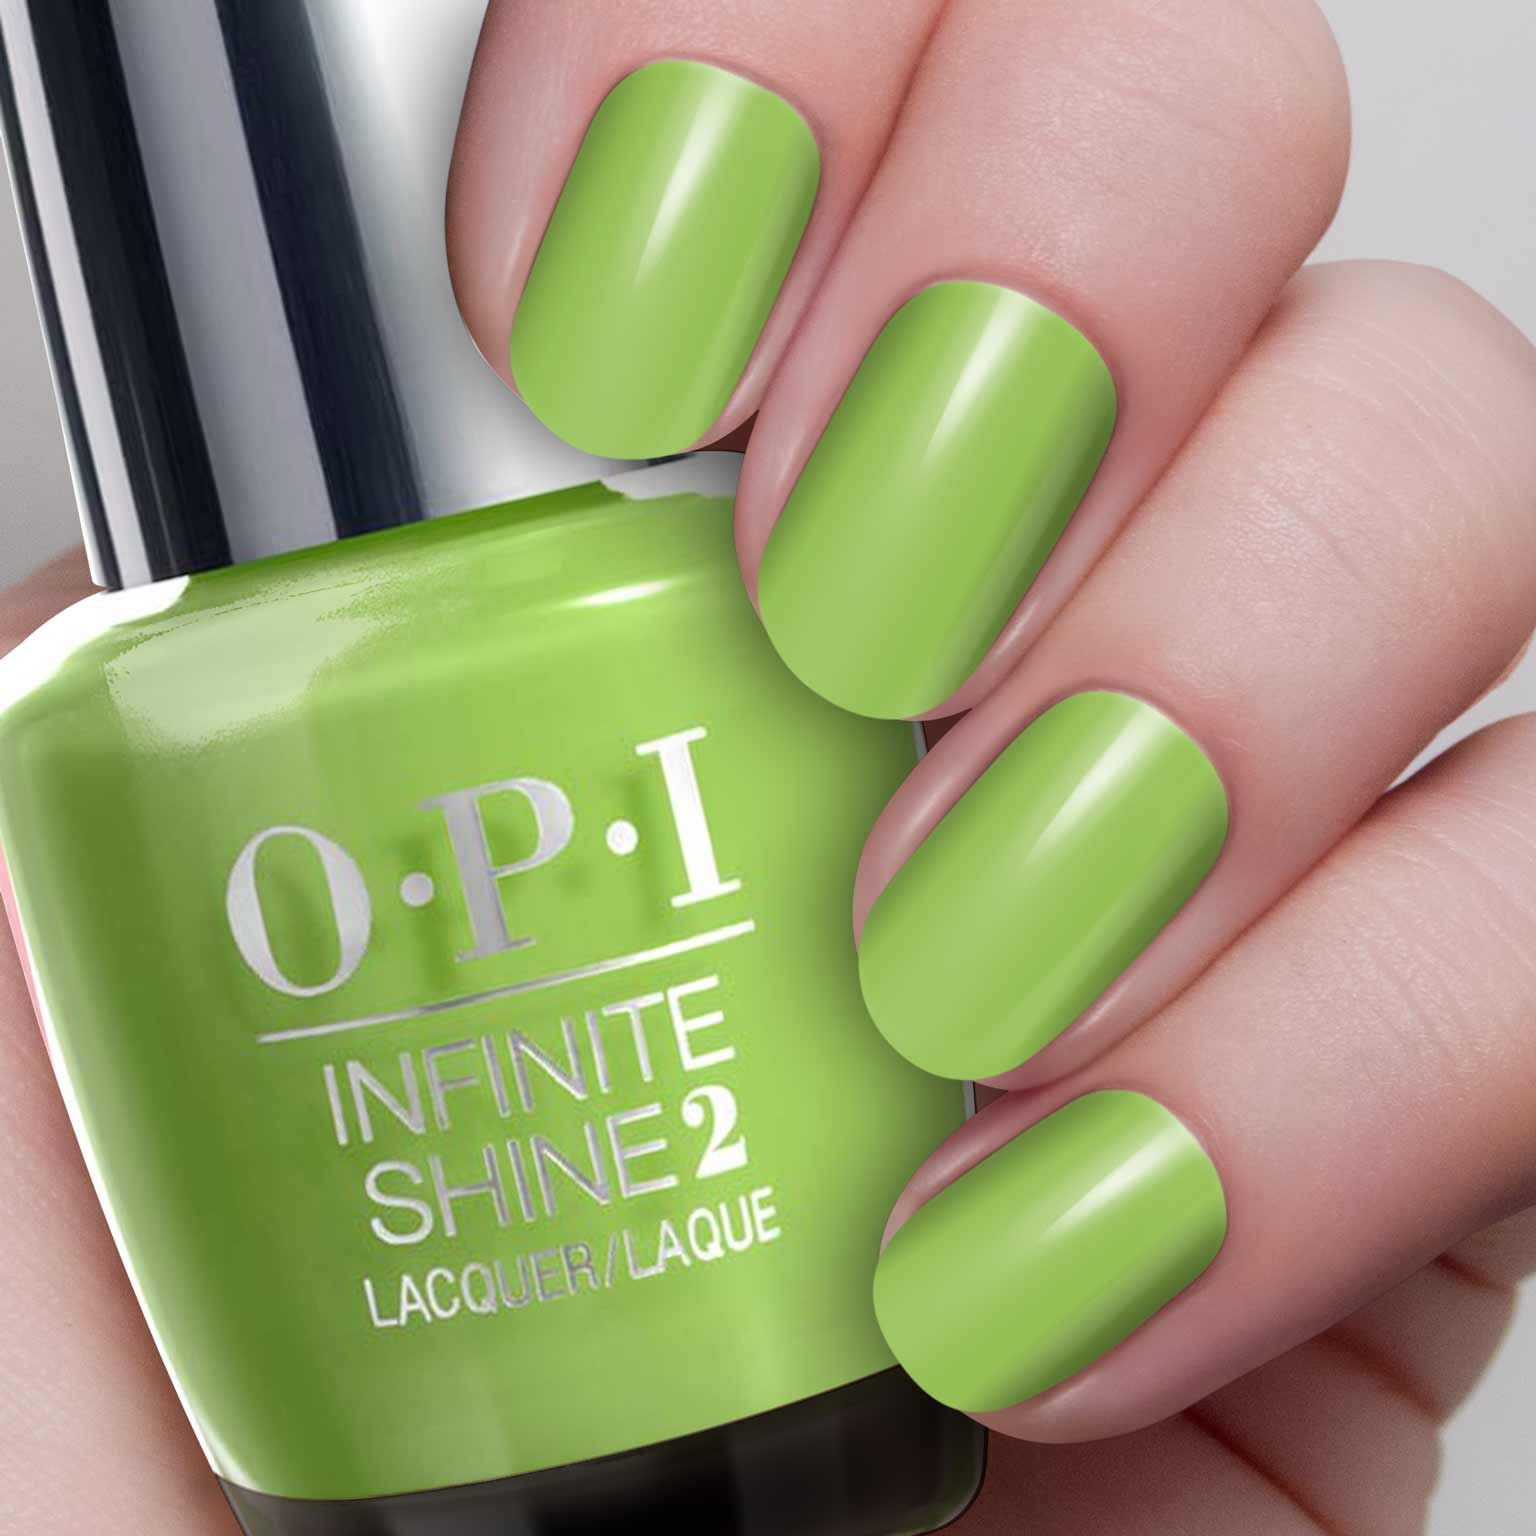 OPI INFINITE SHINE GEL EFFECT NAIL POLISH | eBay